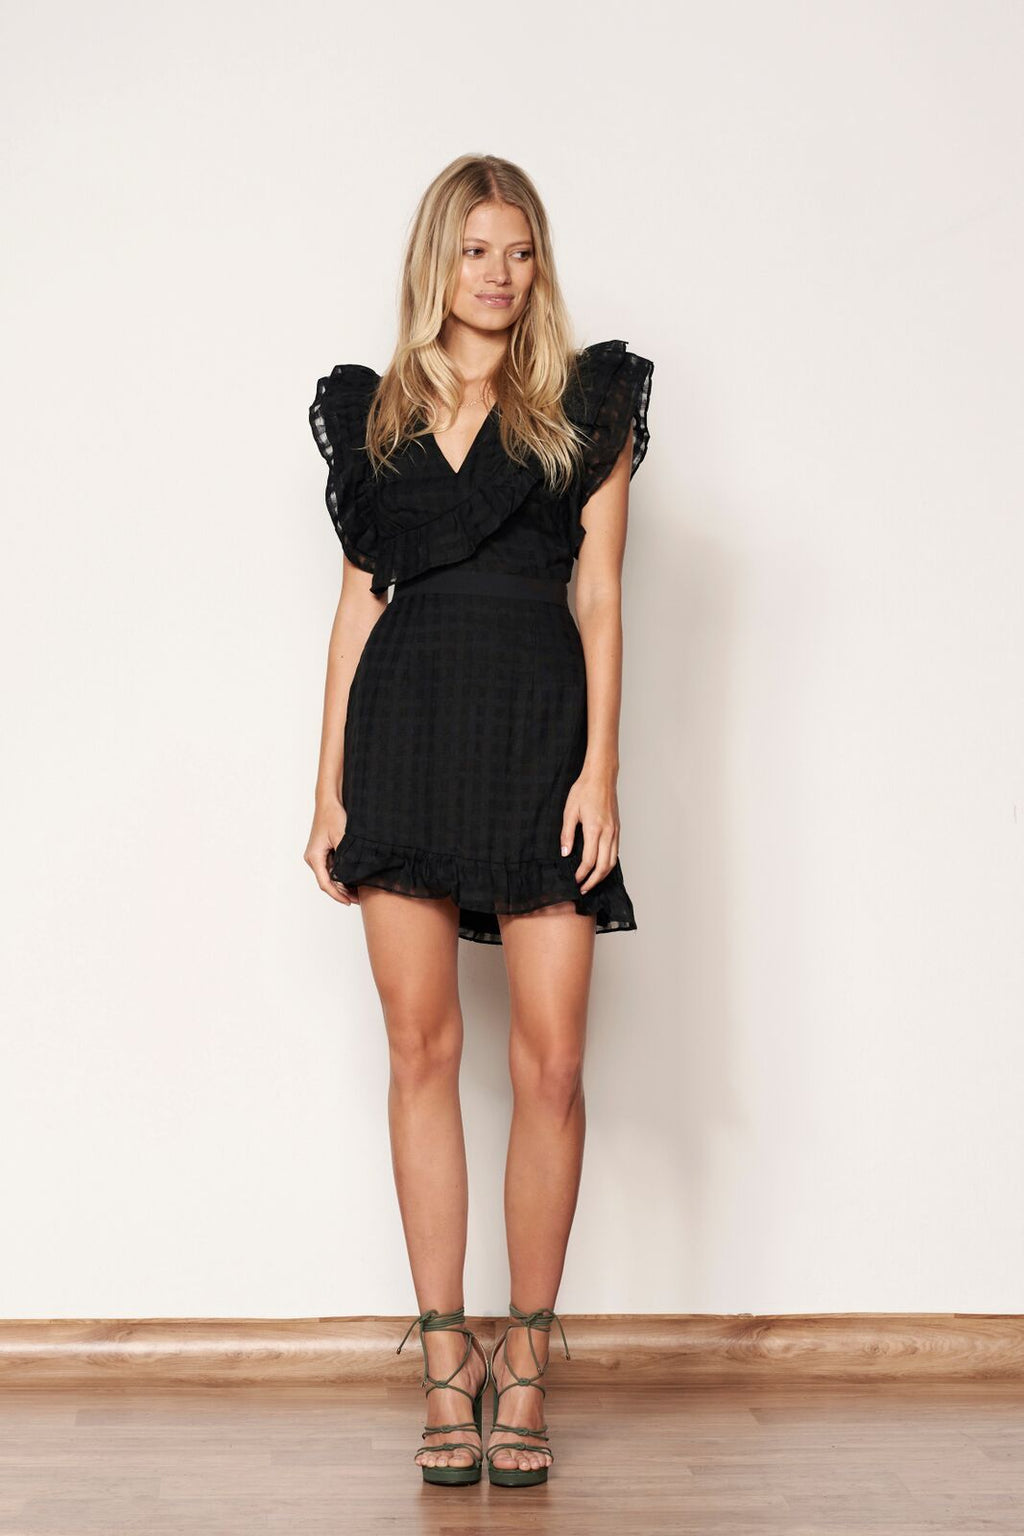 Stevie May Couter Mini Dress - Stevie May, The East Order, Talulah, Pasduchas, Everly Collective